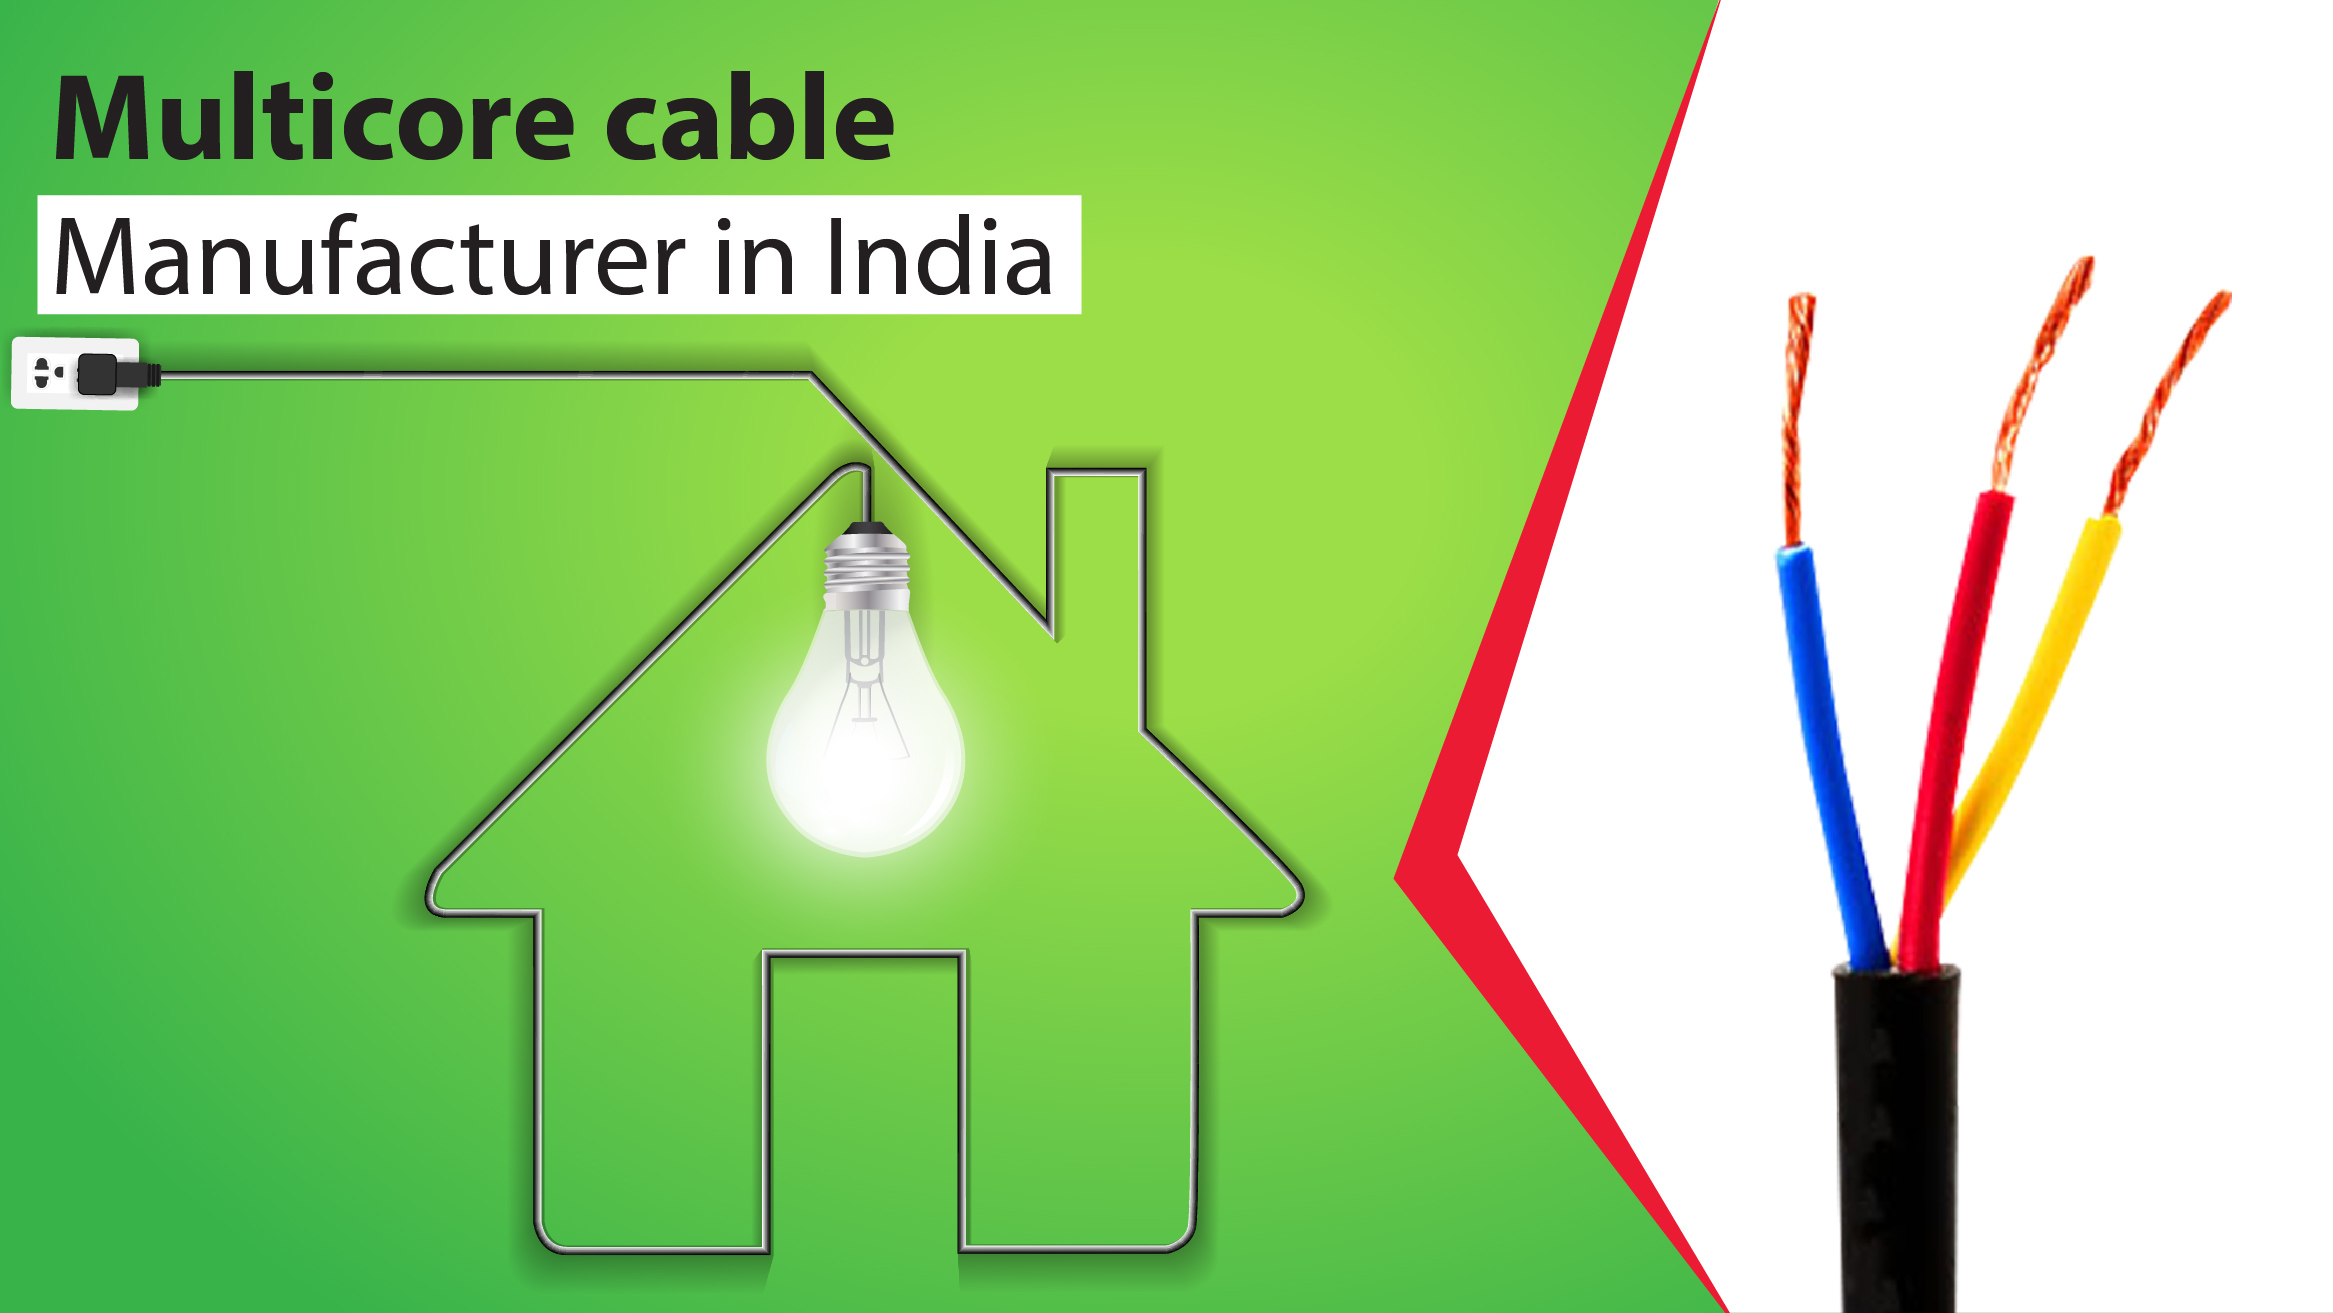 How imperative it is to have fire resistant cables in smart cities?